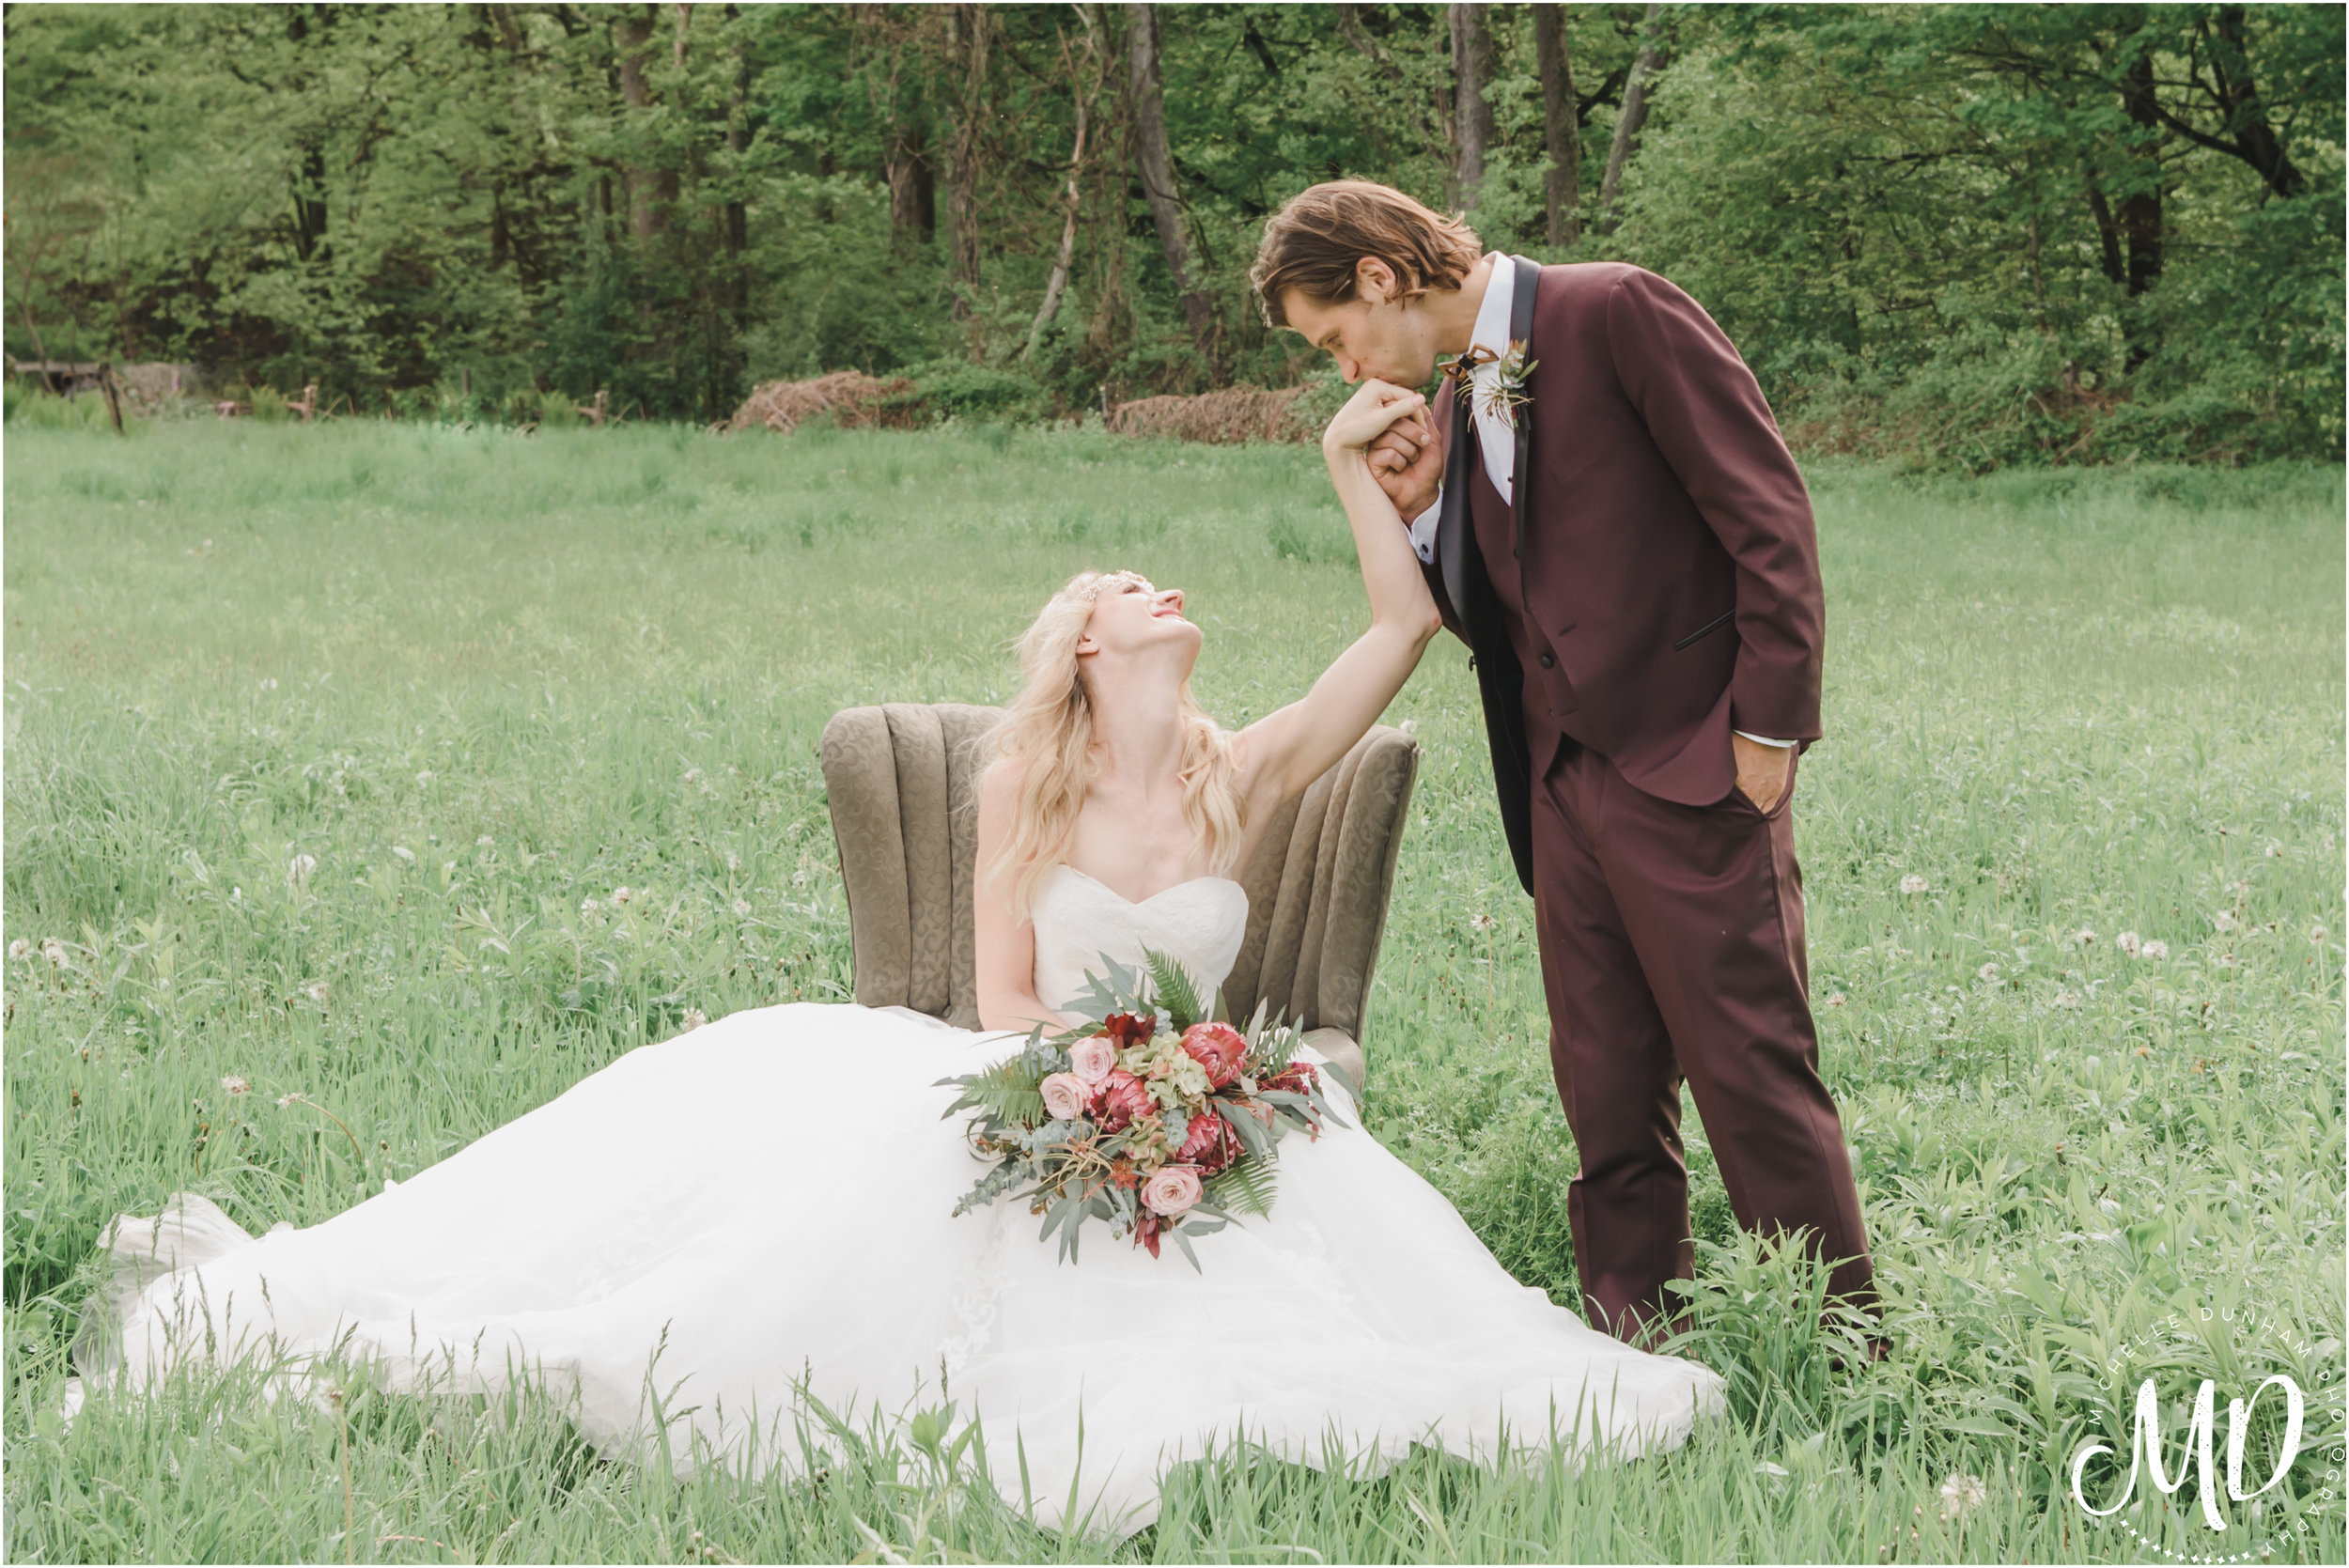 Michelle Dunham Photography_Boho_BrideandGroom_4.jpg